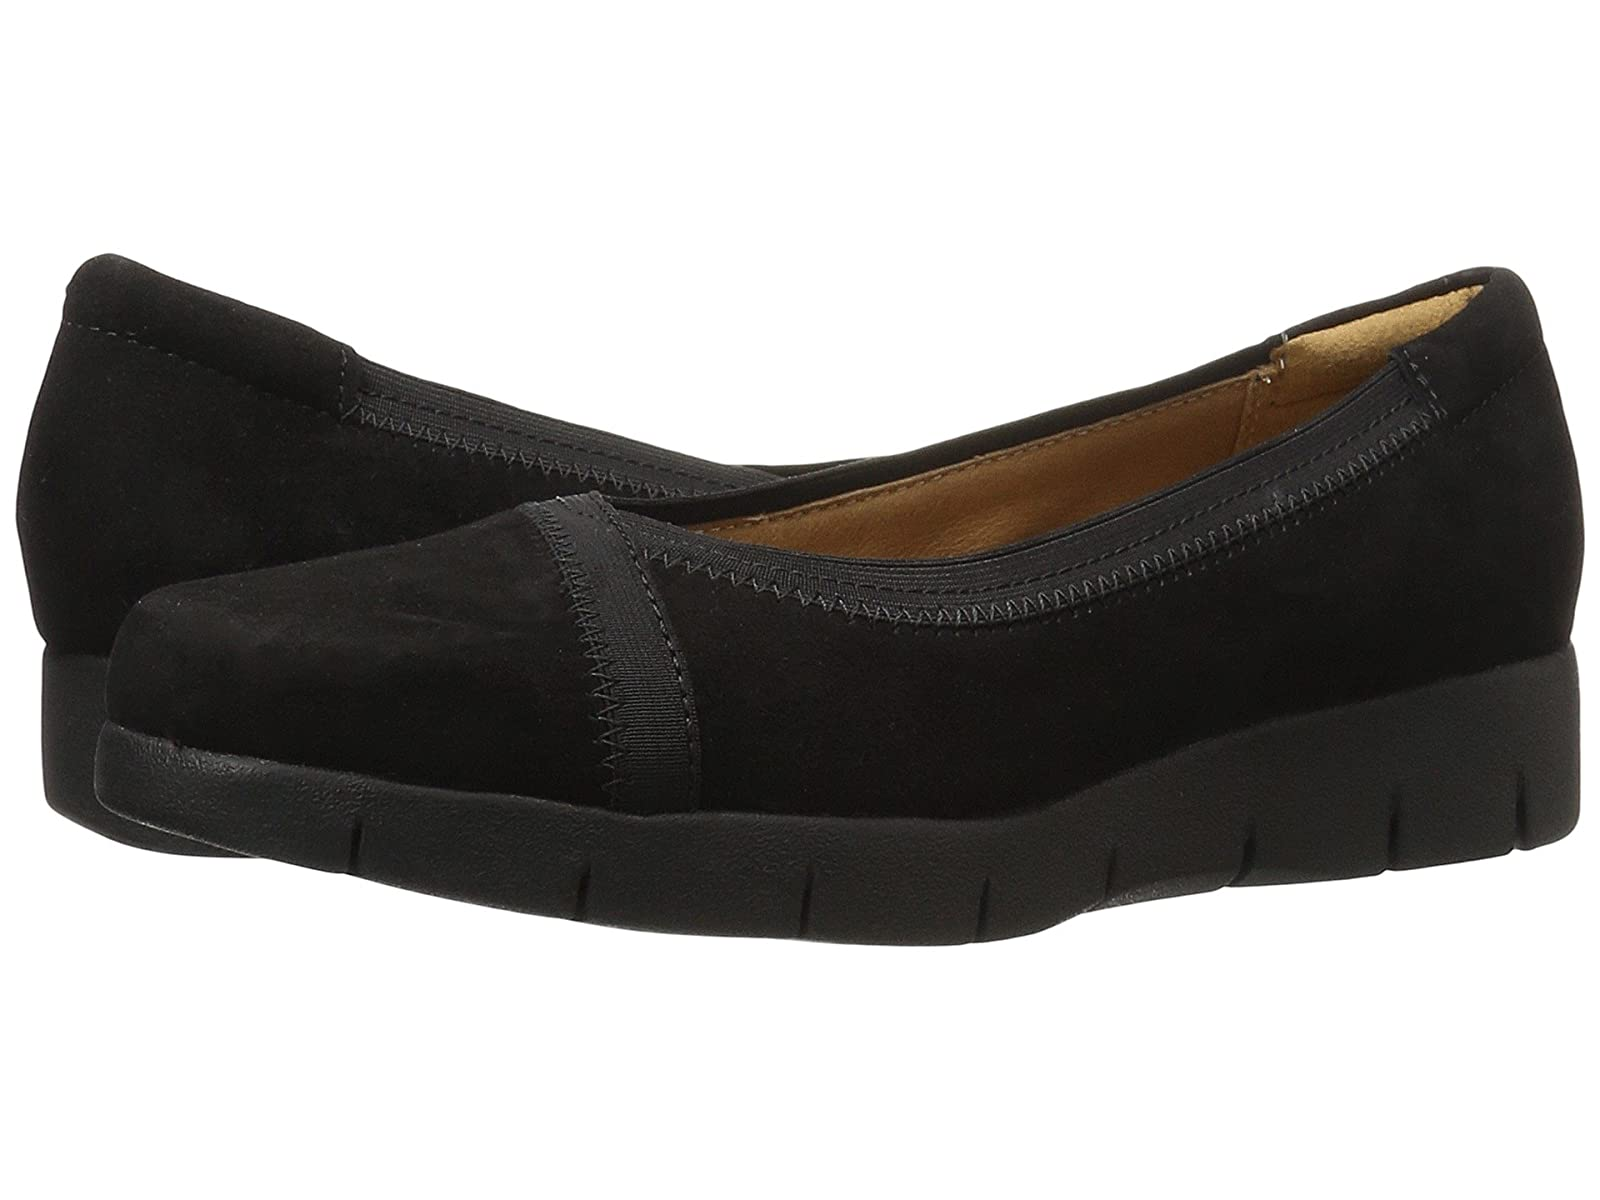 Clarks Daelyn HillCheap and distinctive eye-catching shoes